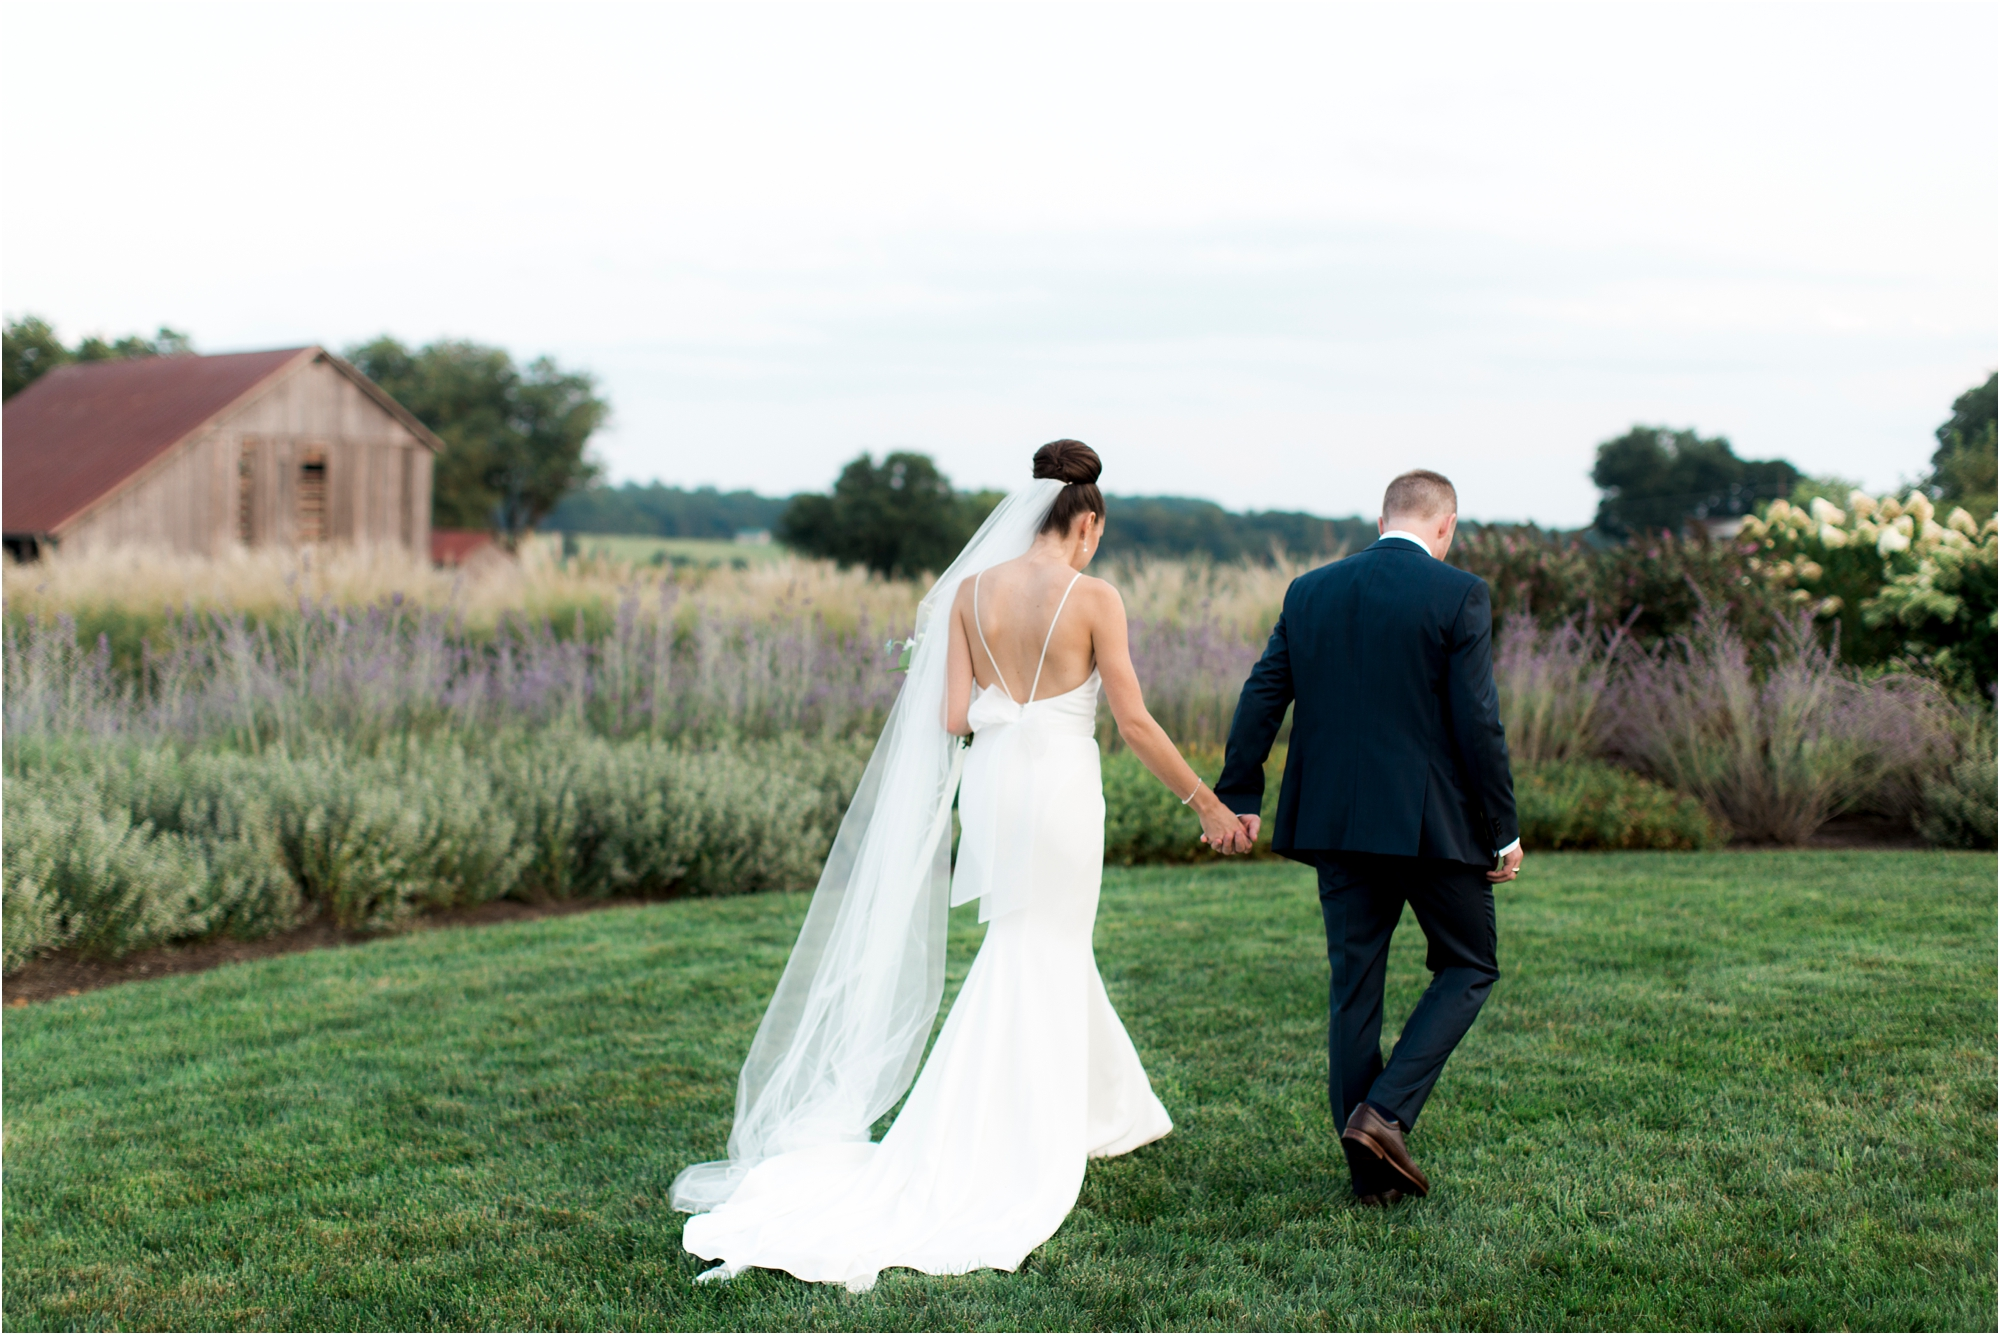 michelle-george-early-mountain-vineyard-charlottesville-virginia-wedding-photos_0038.jpg